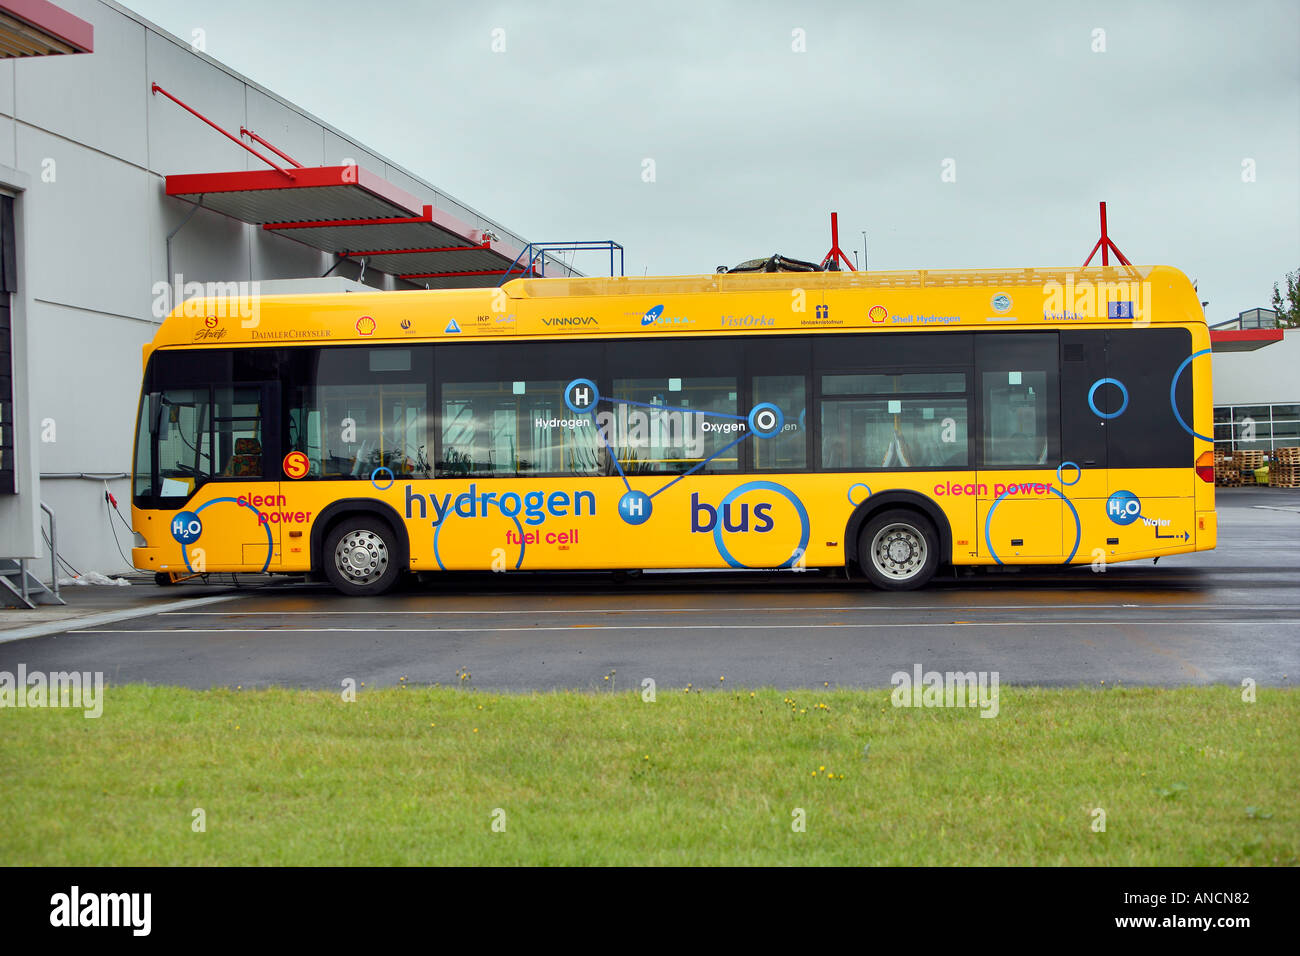 Hydrogen Powered Bus Iceland - Stock Image